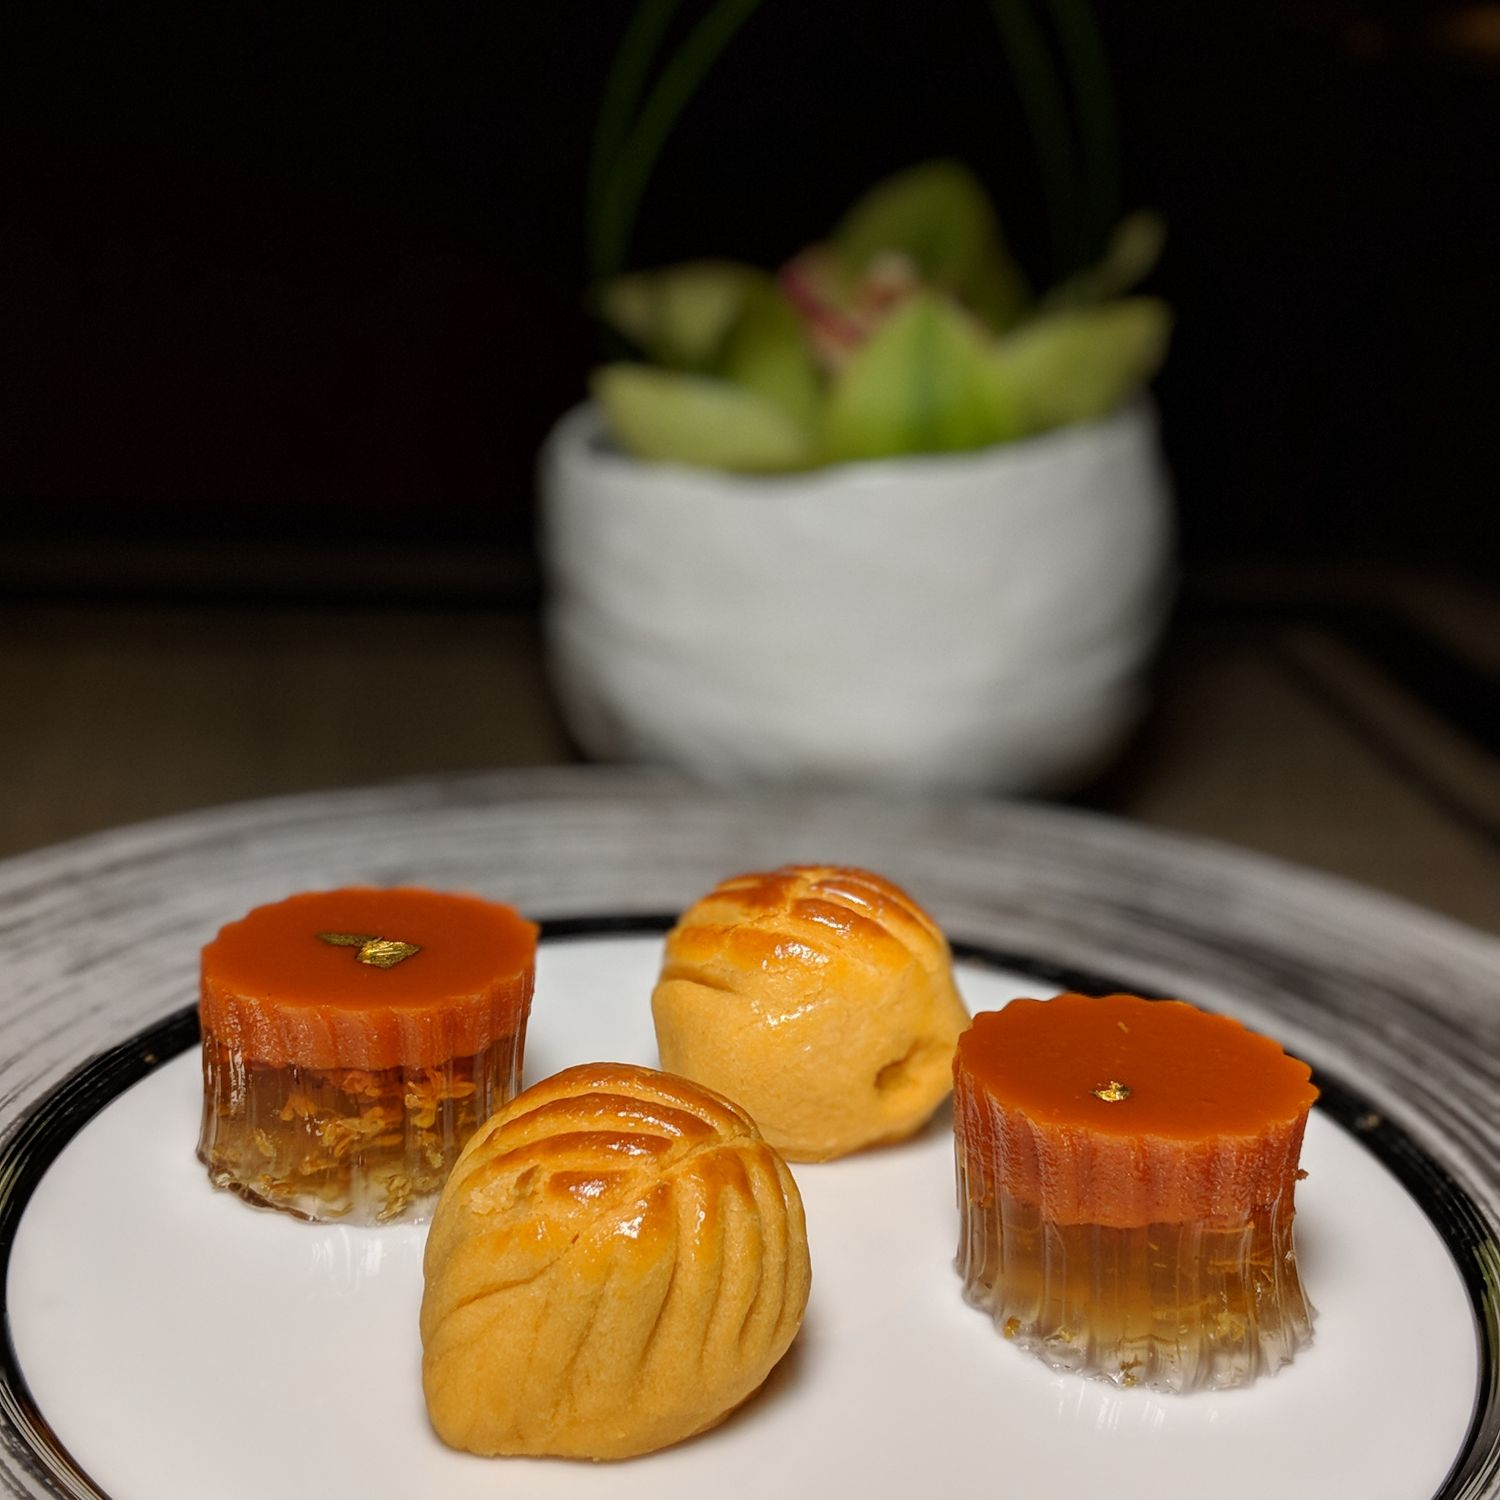 Four Seasons Hotel Singapore Jiang-Nan Chun Petit Fours